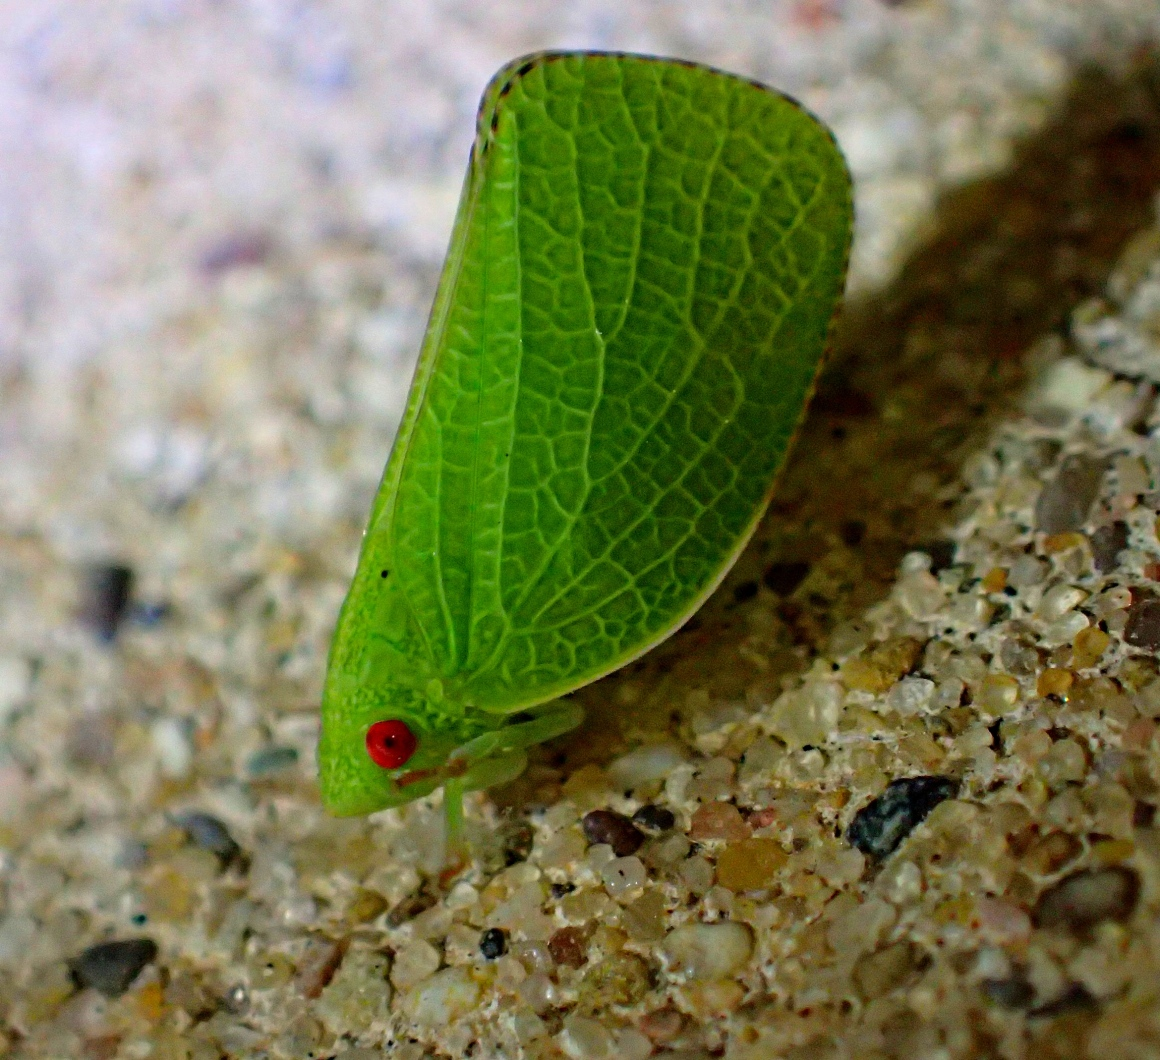 Planthopper. Enlightenment personified (2). Photo by Thomas Peace 2014